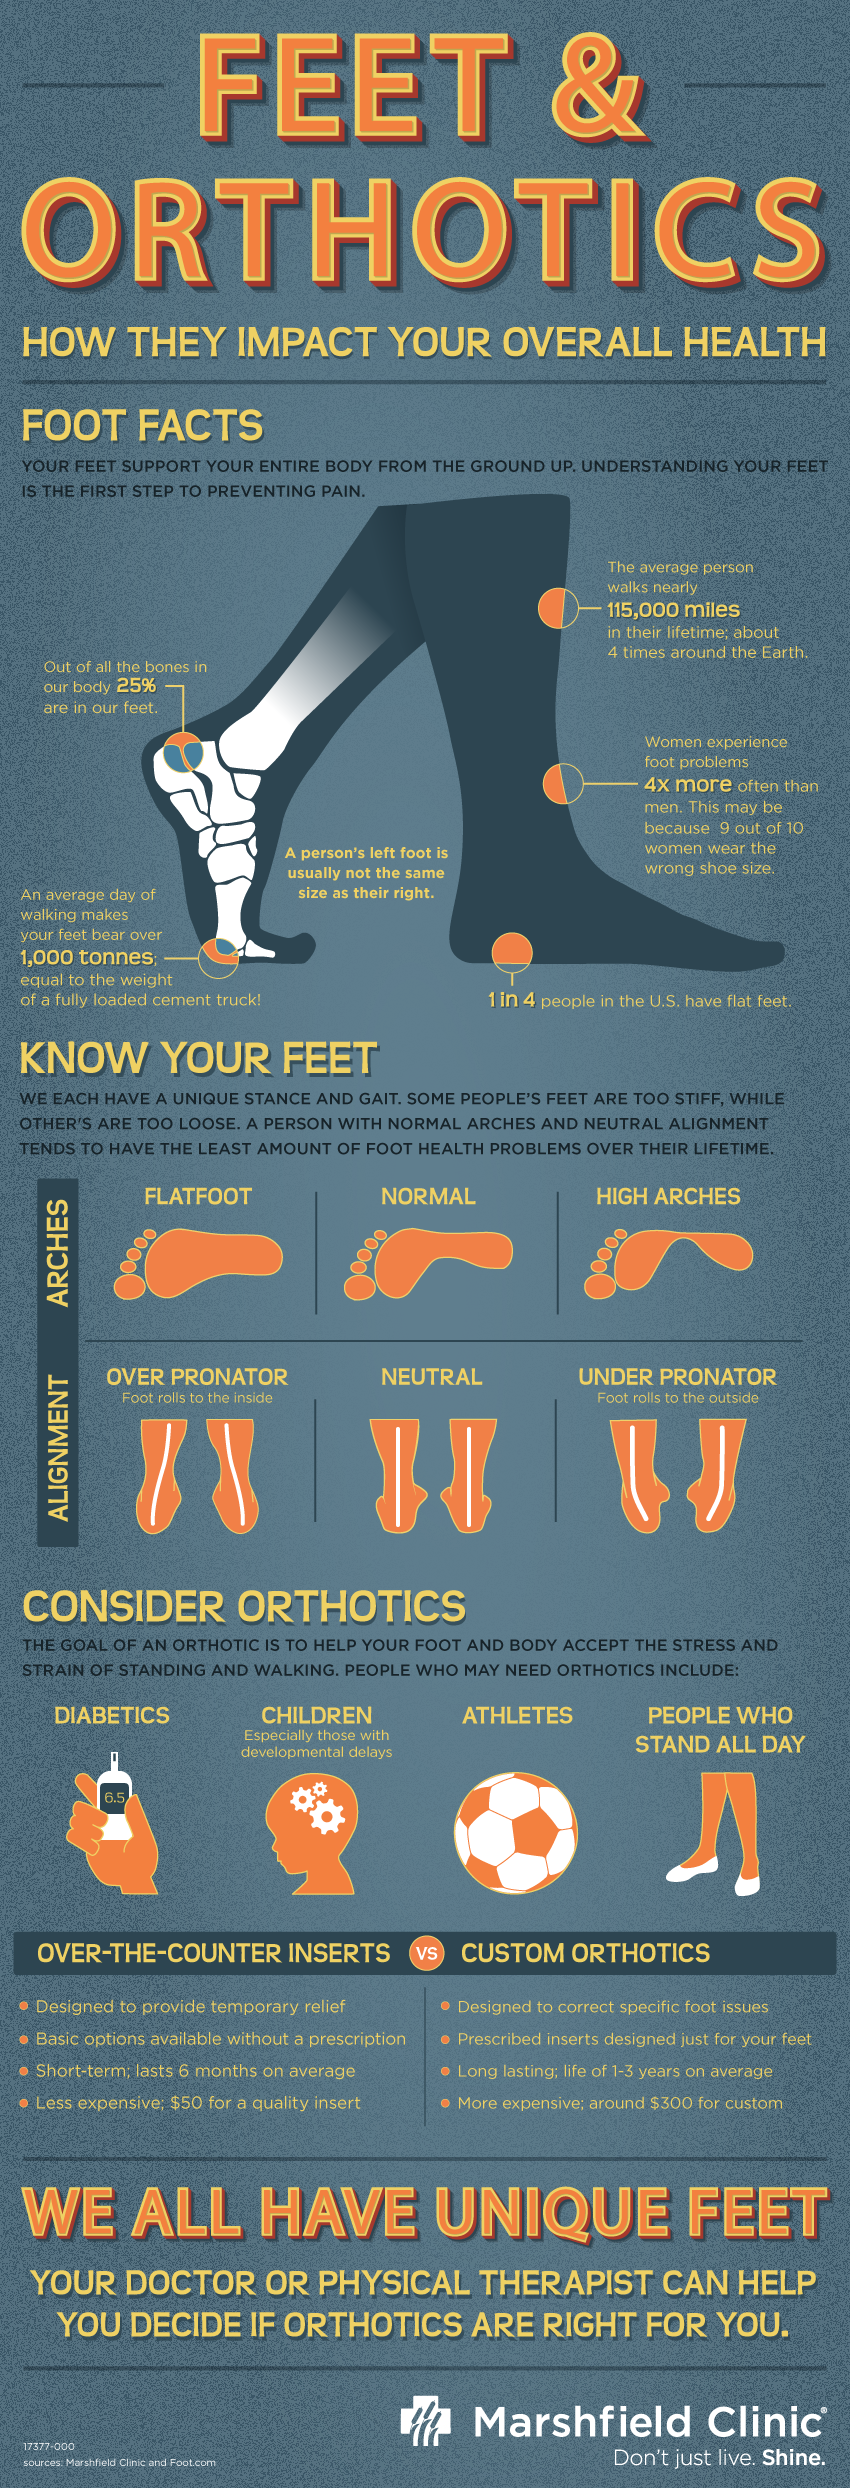 Feet Health Orthotics